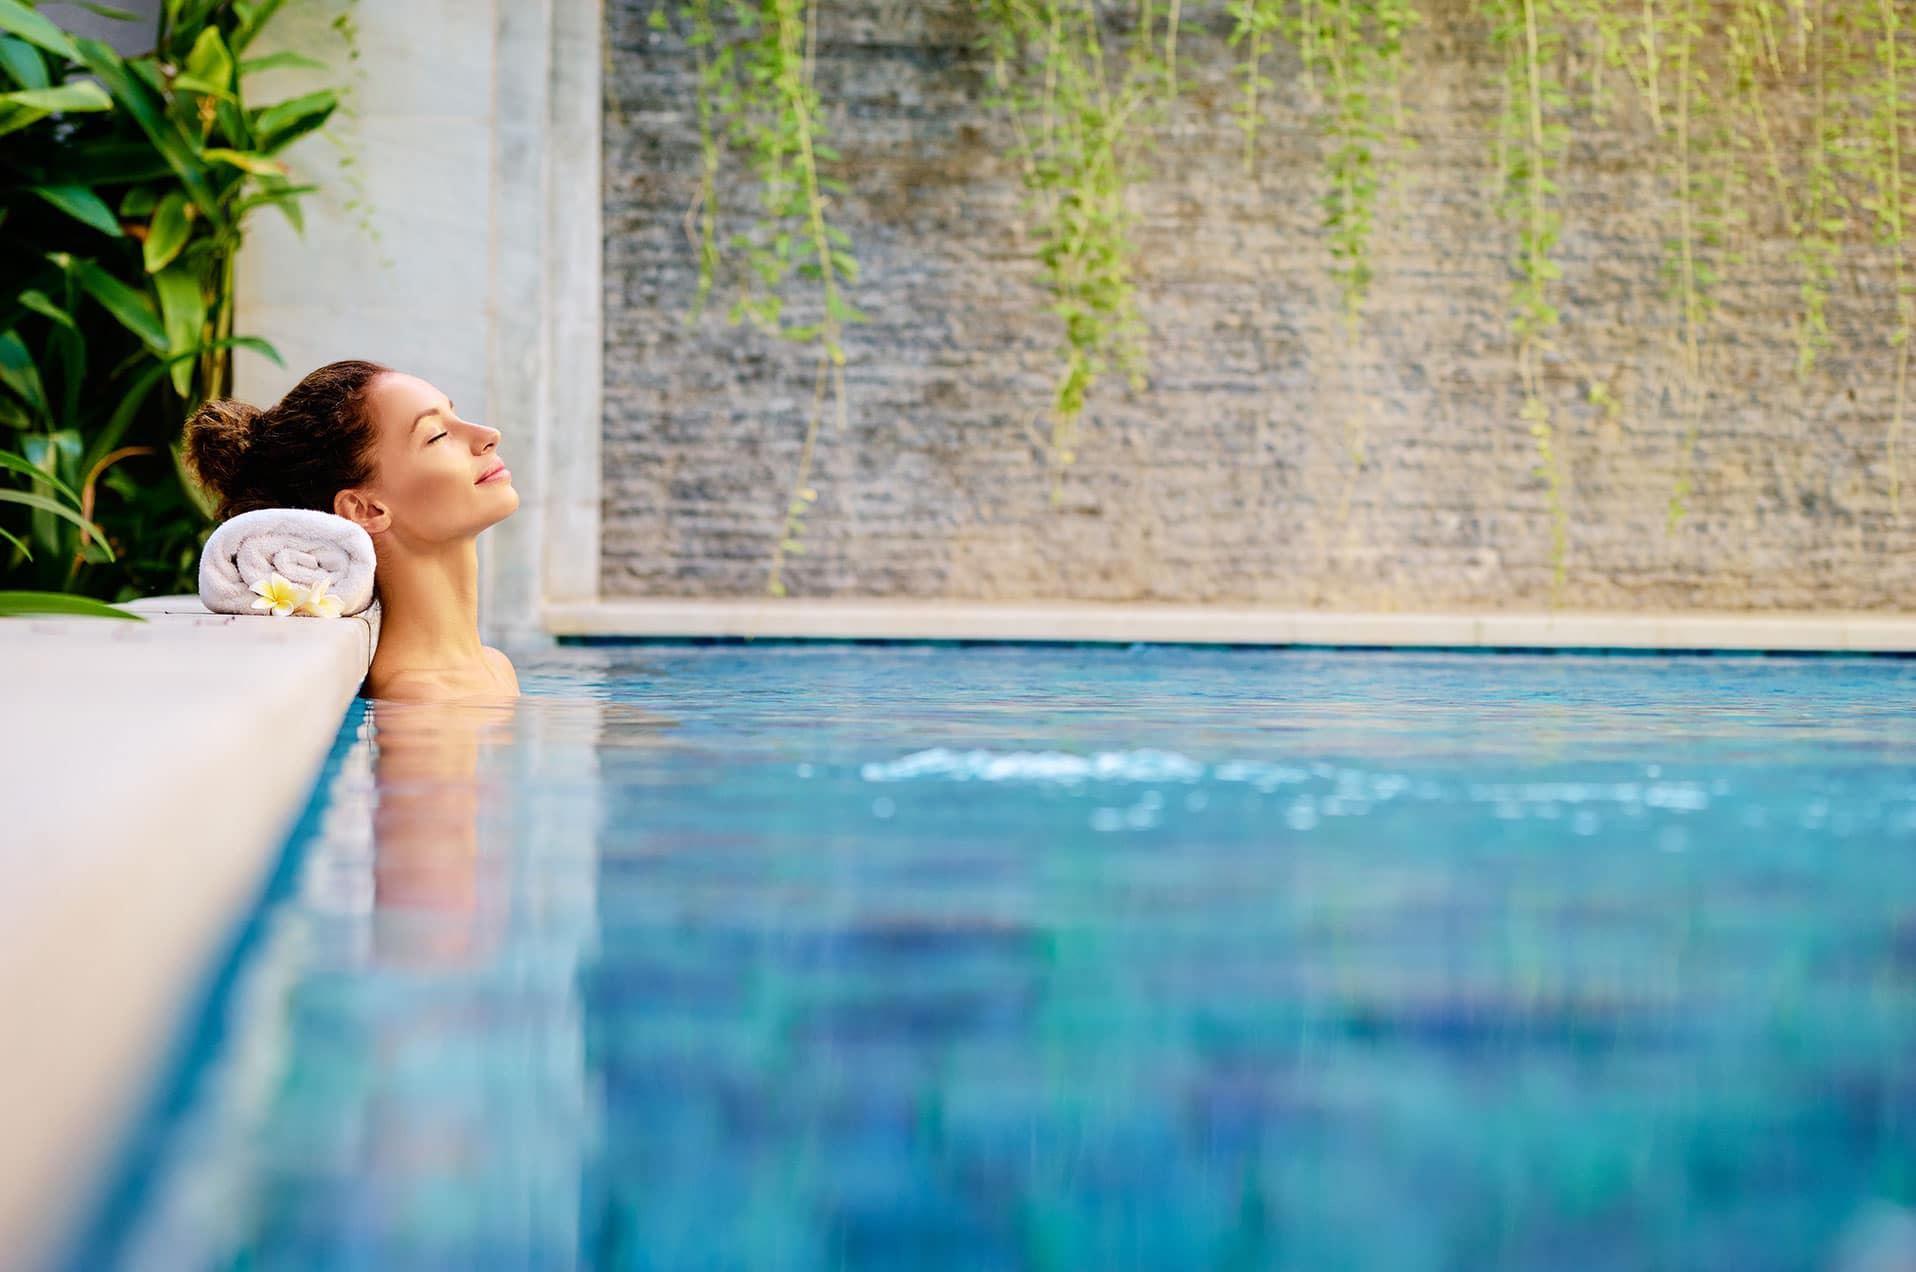 A woman relaxing in an outdoor pool